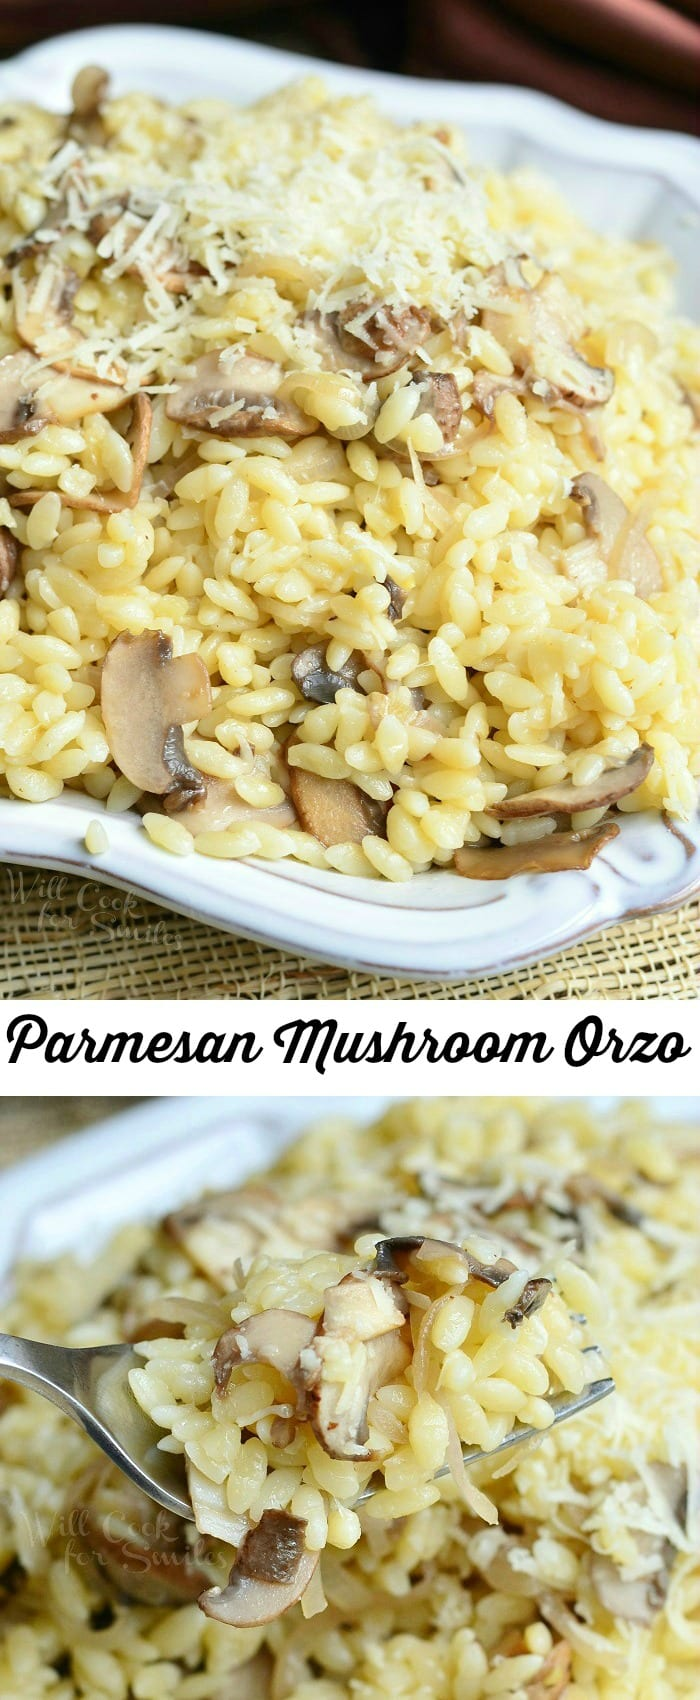 Parmesan Mushroom Orzo | from willcookforsmiles.com #pasta #sidedish #meatless